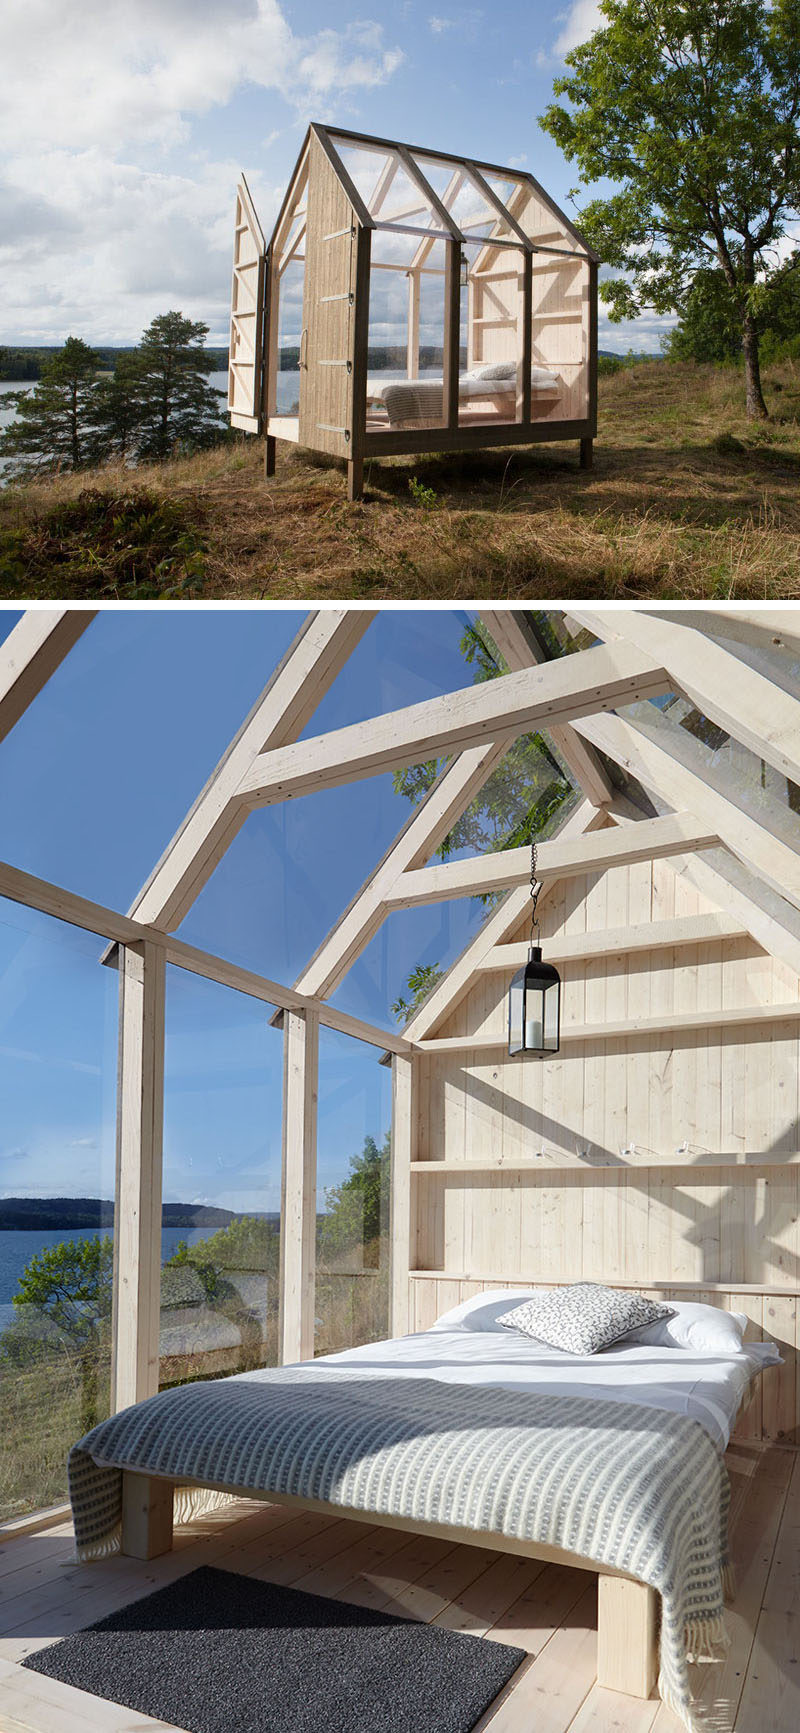 "As part of a new case-study that will investigate the effects on health of living in Swedish nature, ""The 72 Hour Cabin"" will launching on October 10th and five people with some of the most stressful jobs around the world will experience a 'close to nature' lifestyle that involves them staying in a little cabin for three days. #Cabin #Architecture #Design"